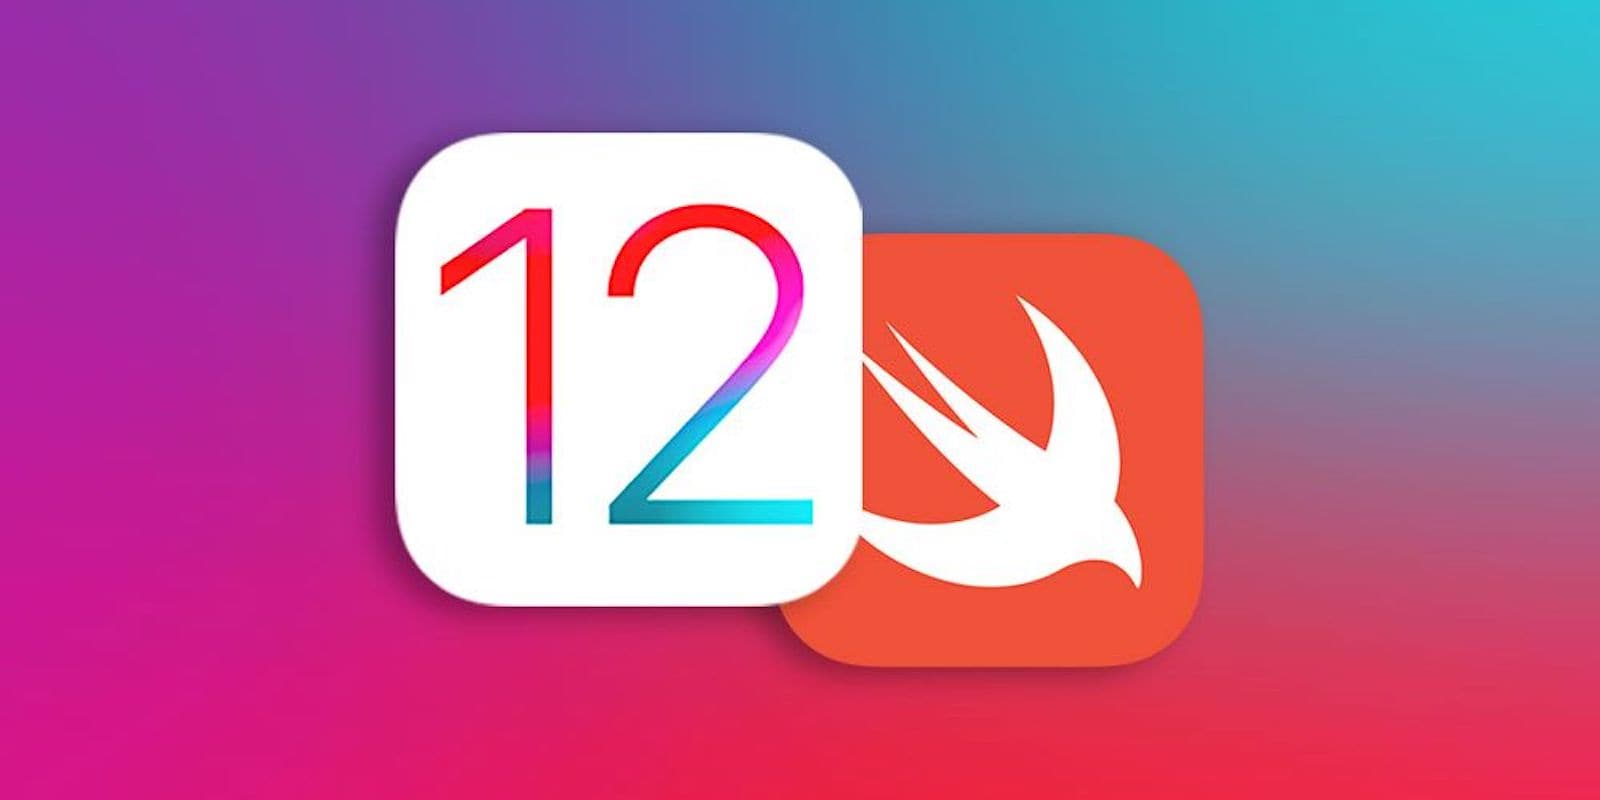 Dive into a comprehensive course in building iOS apps, for a deep discount.